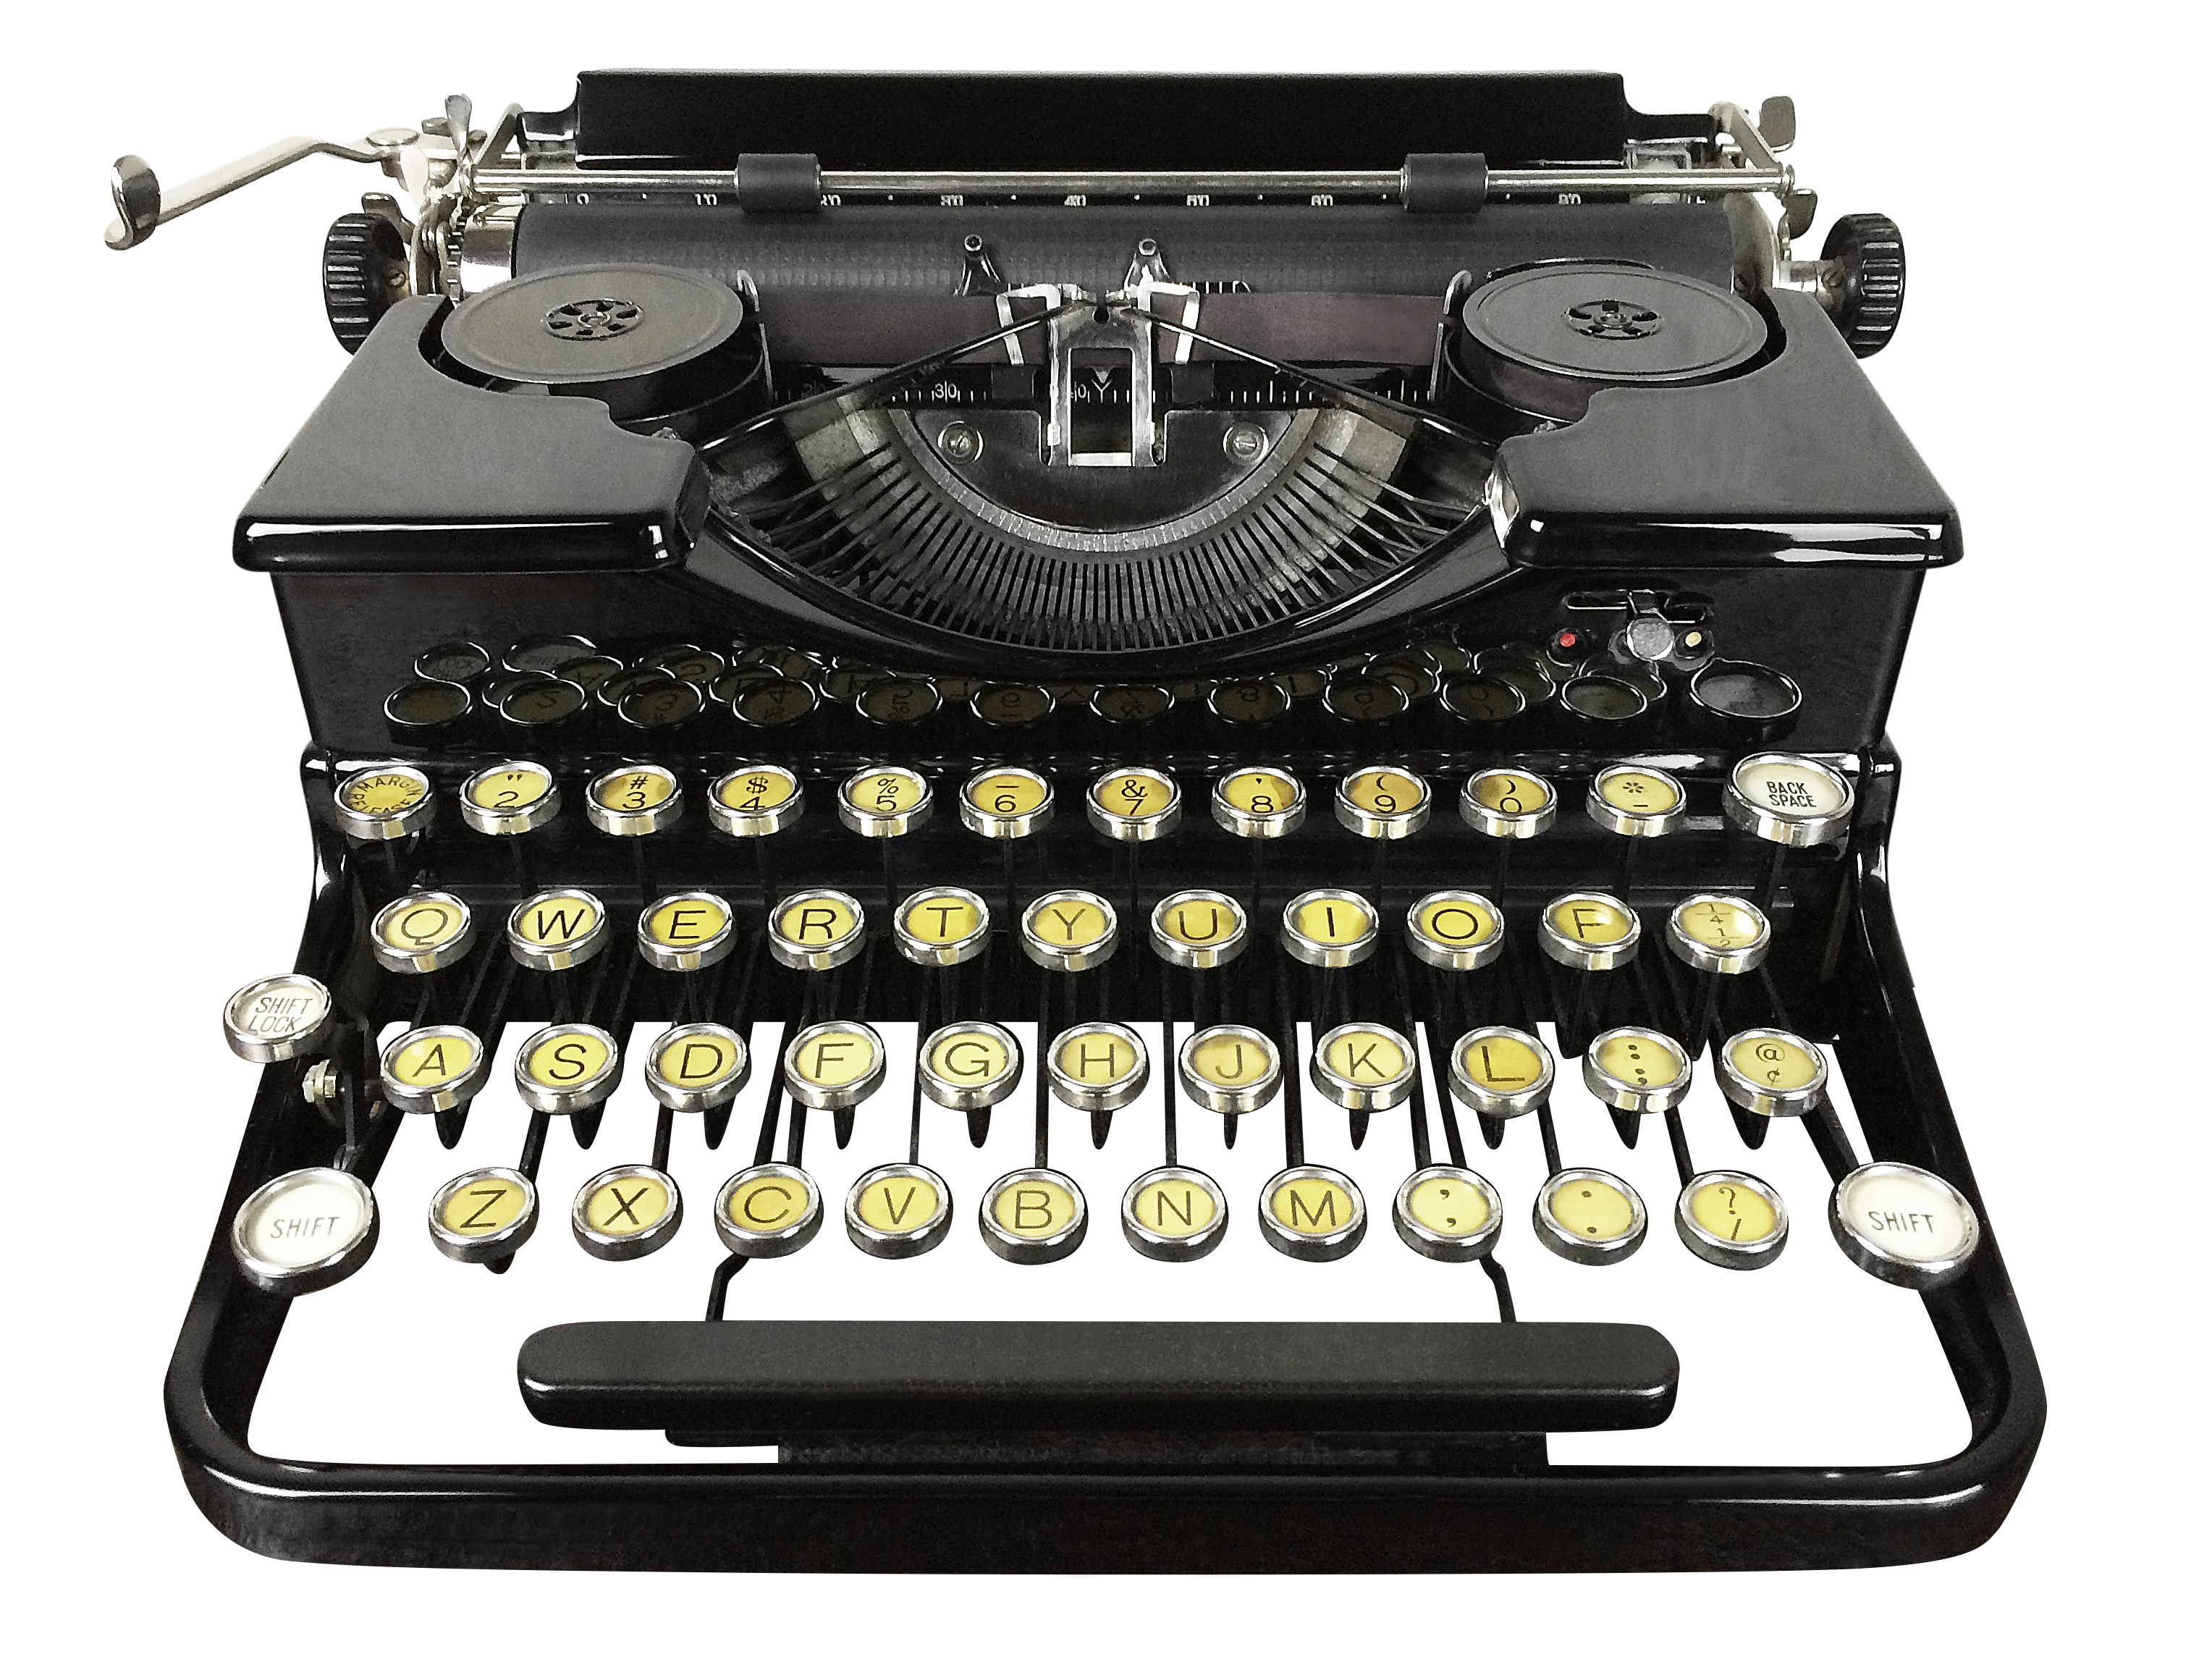 1930s Royal Portable Typewriter Omero Home